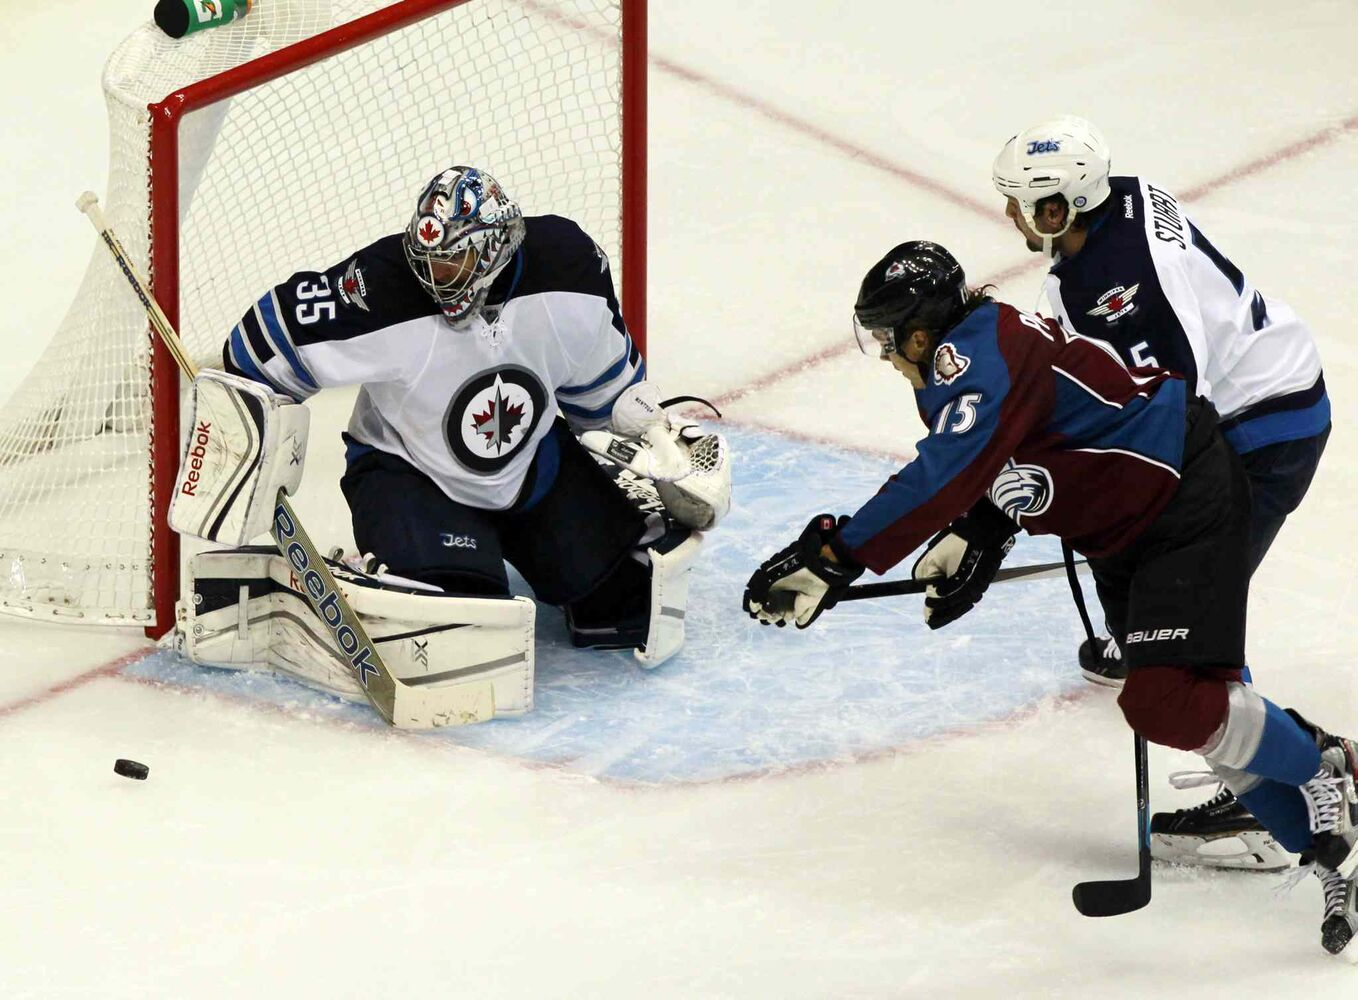 Winnipeg Jets goalie Al Montoya makes a stick save off a shot by Colorado Avalanche winger PA Parenteau (centre) as Jets defenceman Mark Stuart backchecks during the third period. (David Zalubowski / The Associated Press)